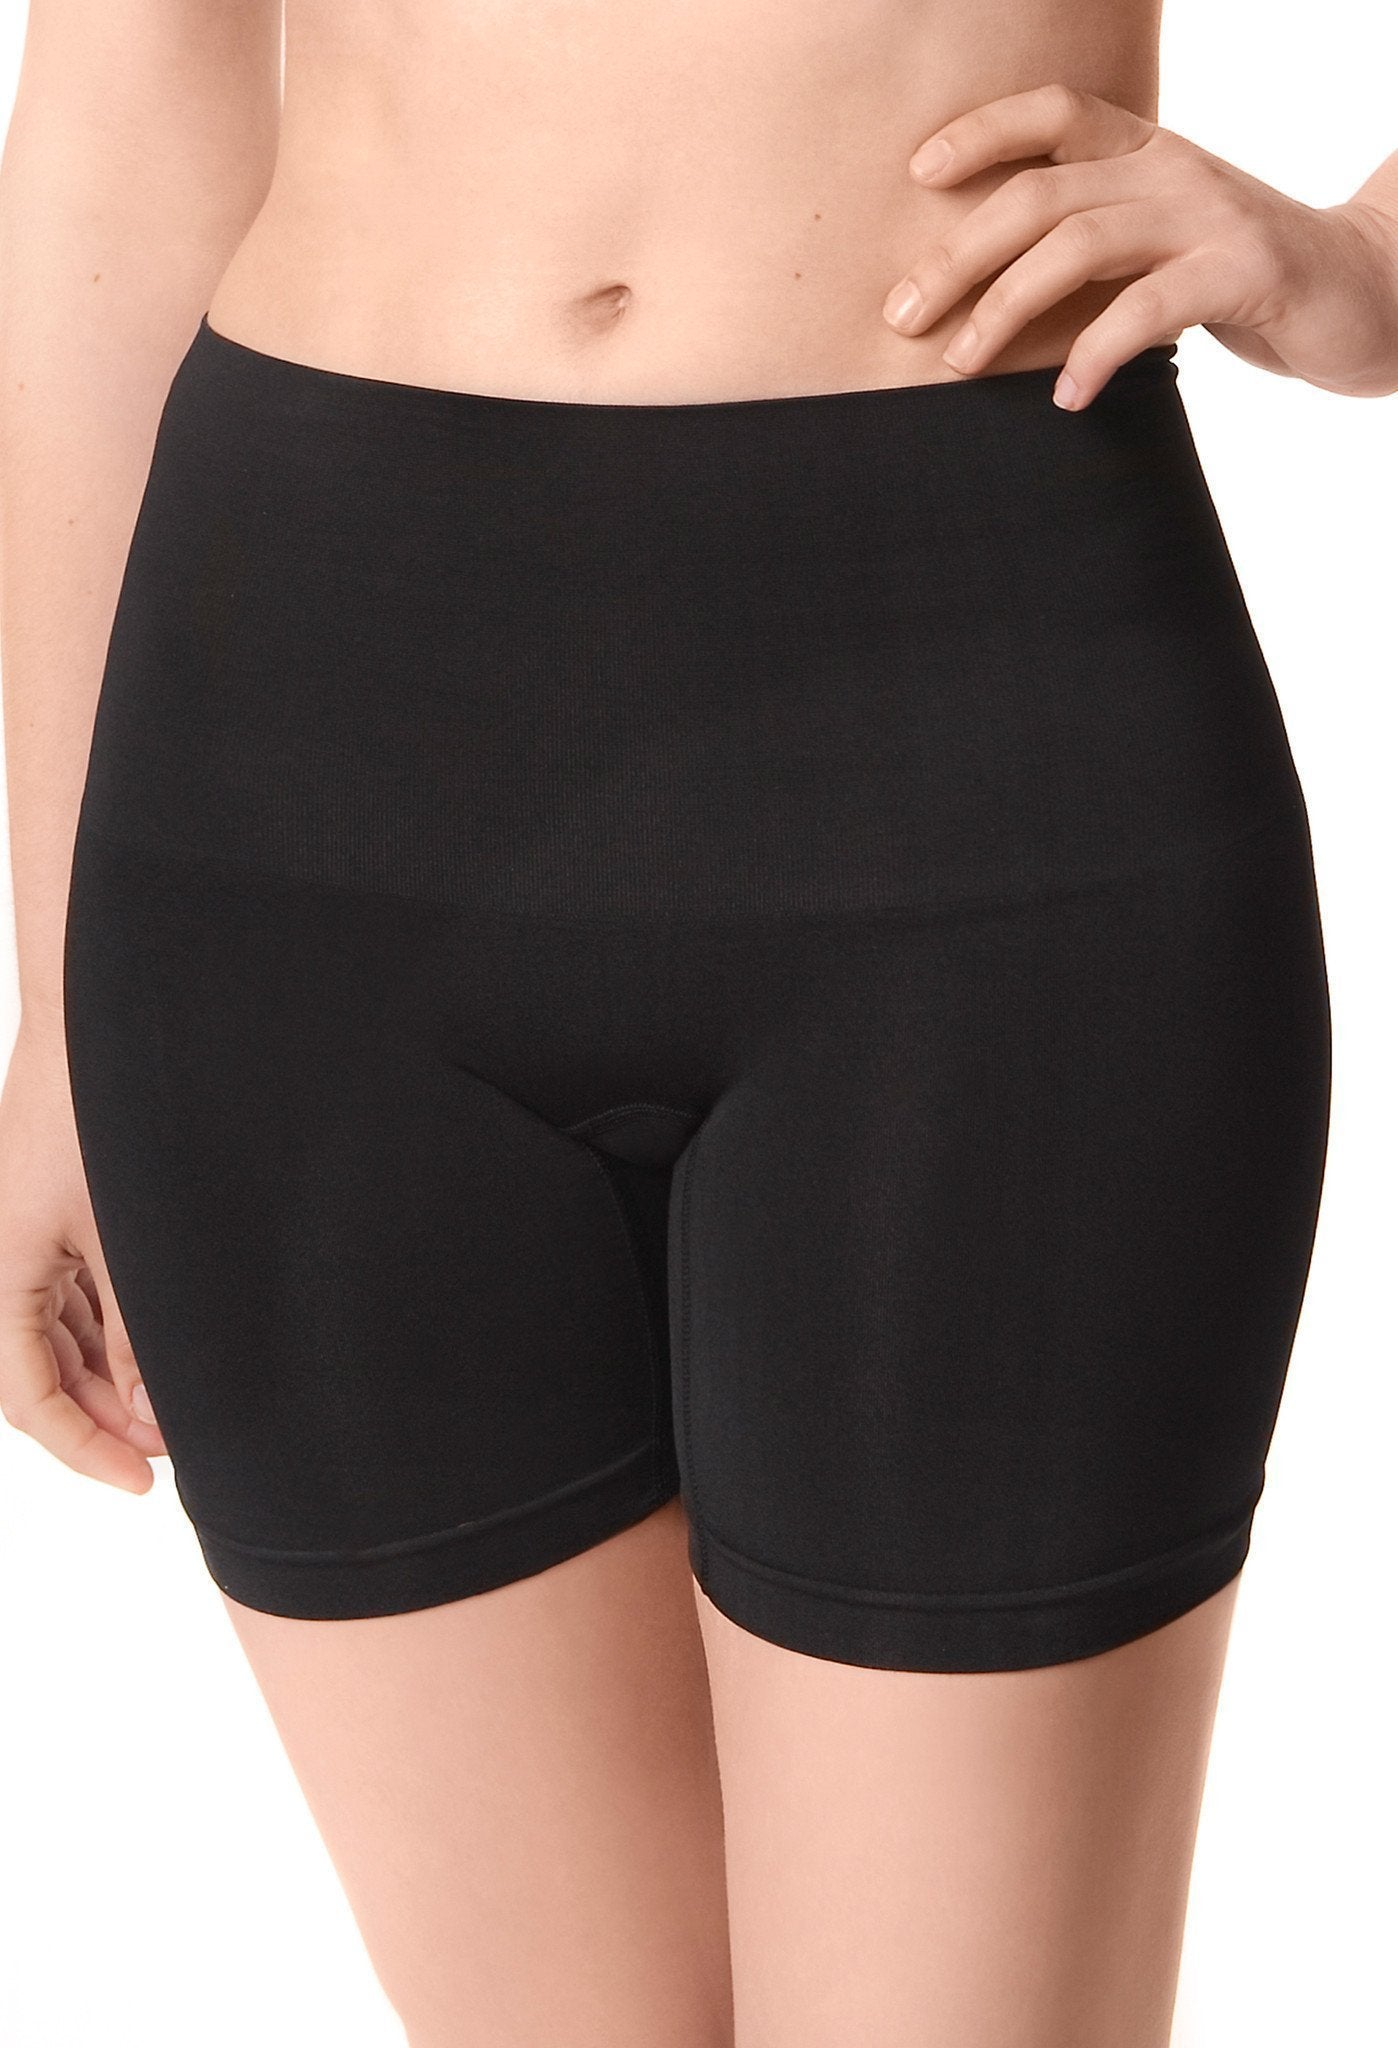 Mini Power Shorts